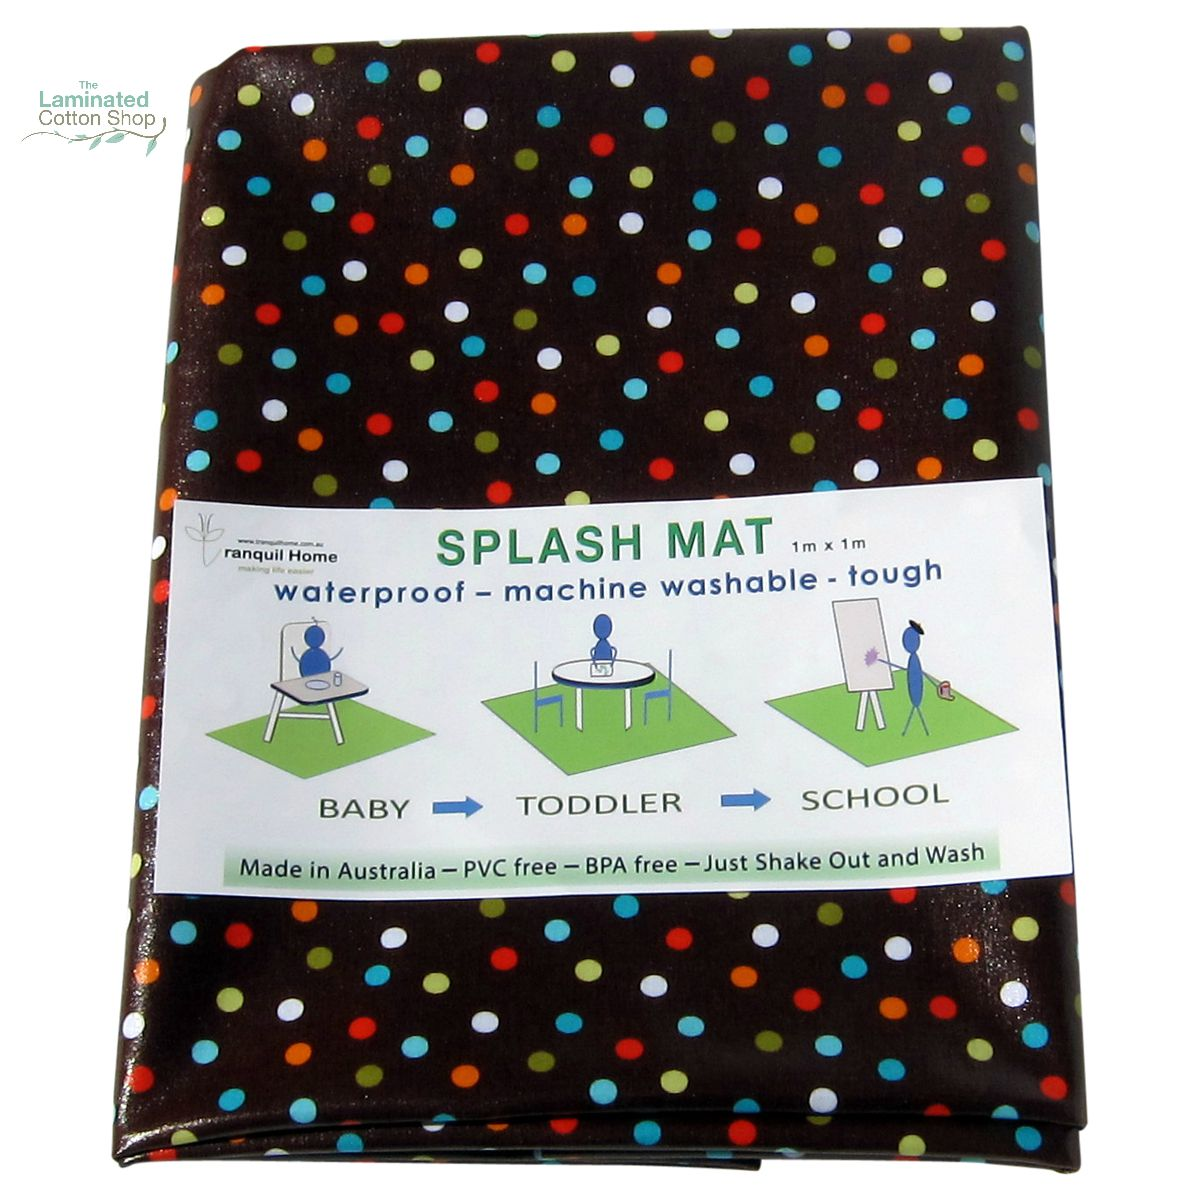 The Laminated Cotton Shop- Messy Mat- High Chair Splash Mat {Chocolate Freckles}